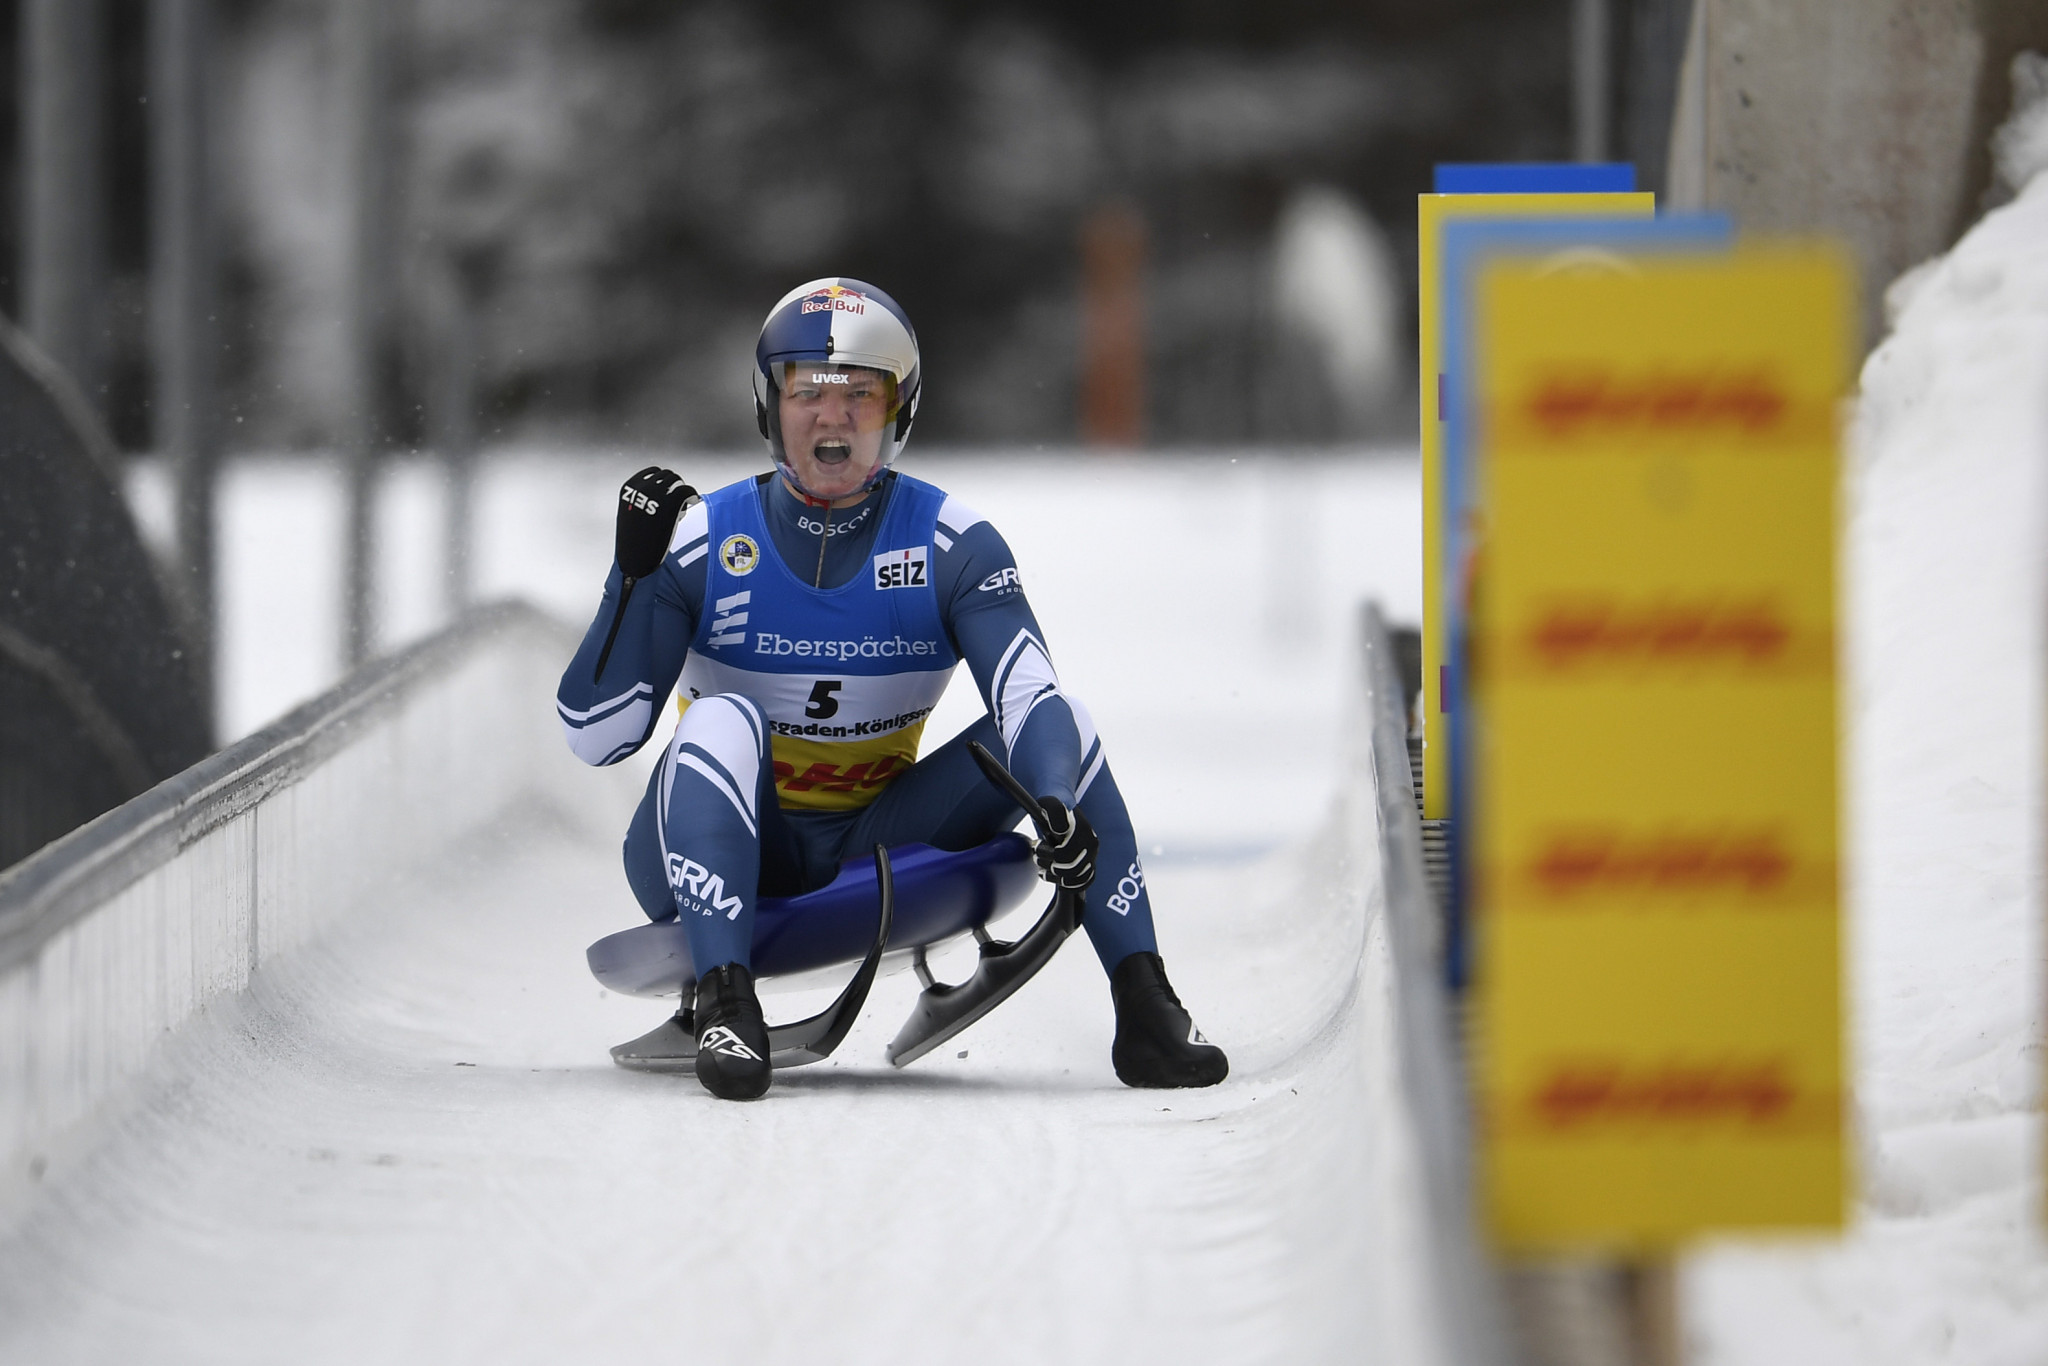 Russian Roman Repilov won the men's world title at the 2021 World Luge Championships ©Getty Images